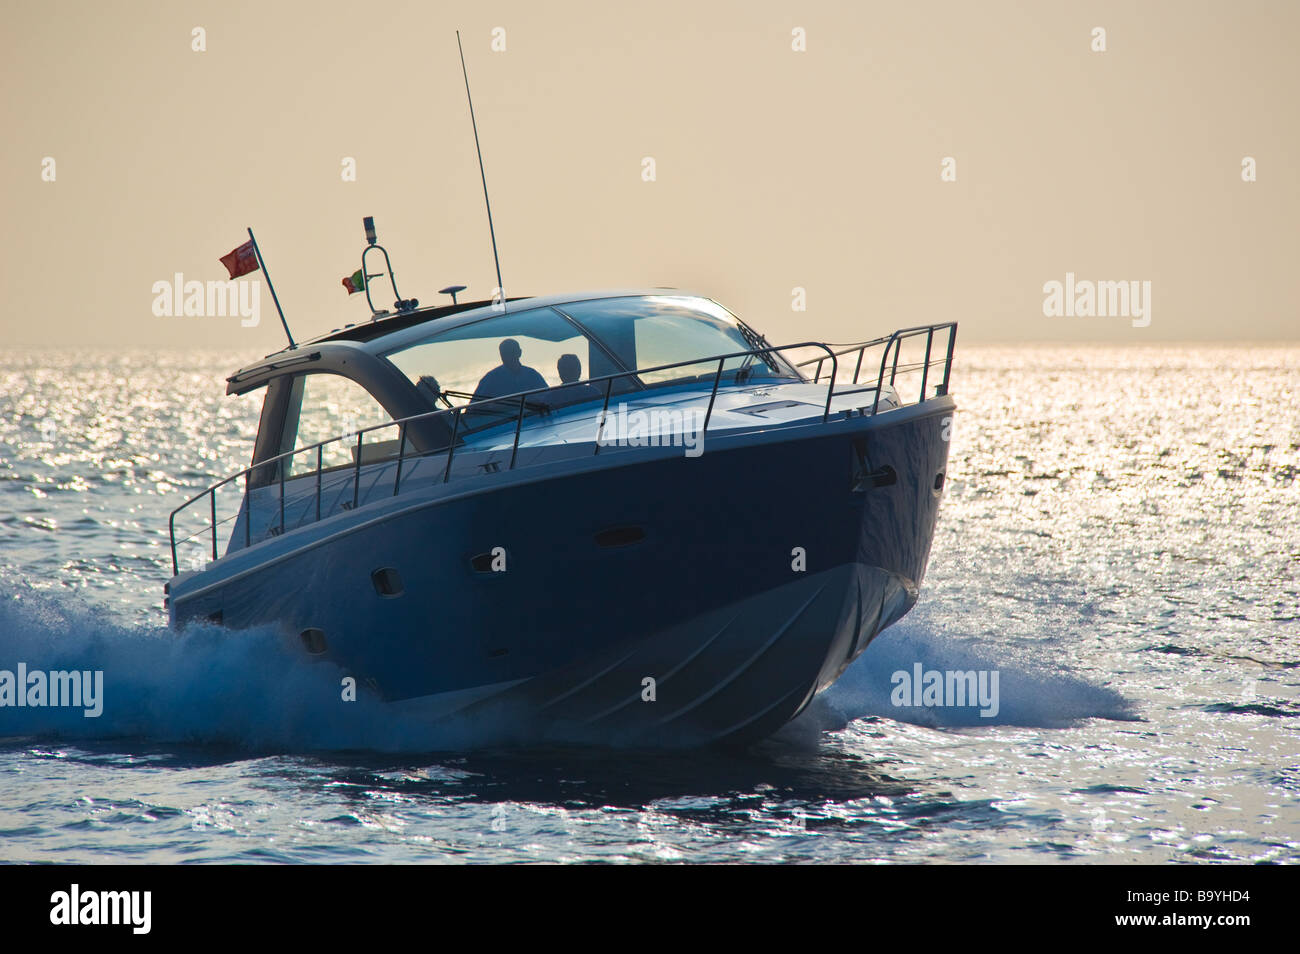 Sealin SC 47 powerboat cruising in the mediterranian sea | Sealine SC 47 Sportboot kreuzt im Mittelmeer - Stock Image